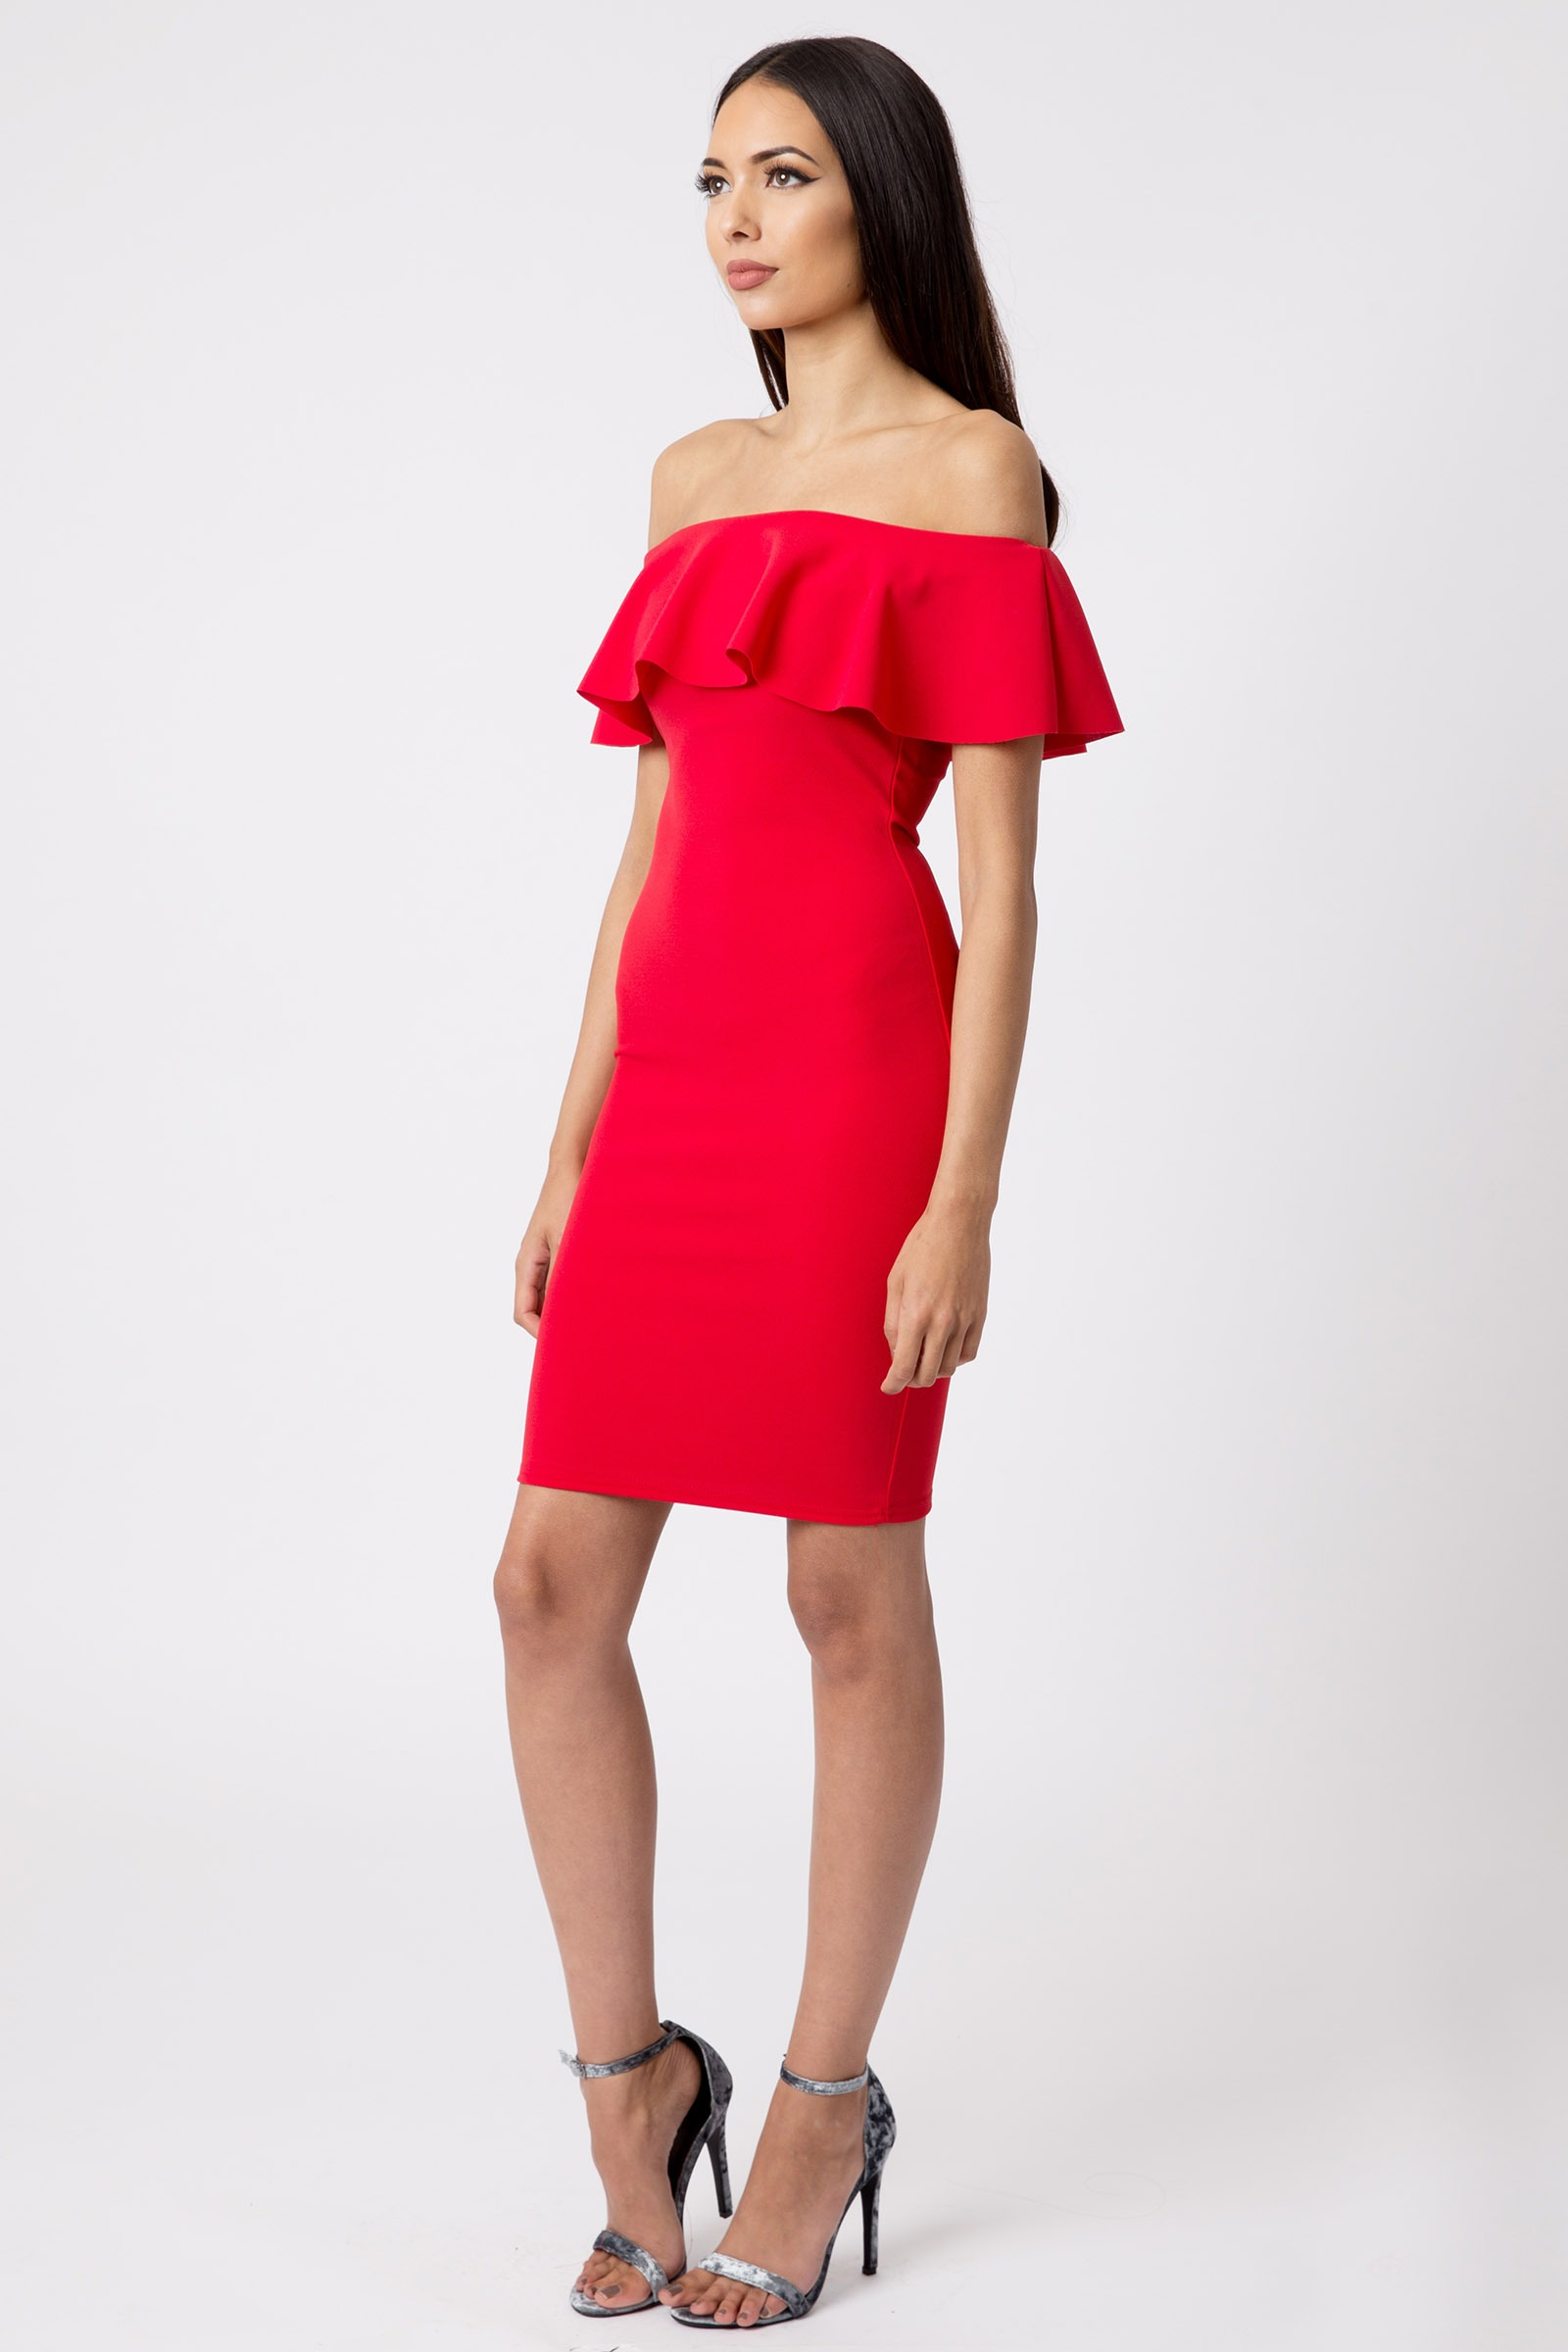 Red Off The Shoulder Bodycon Dress   Dresses   Clothing   Modamore